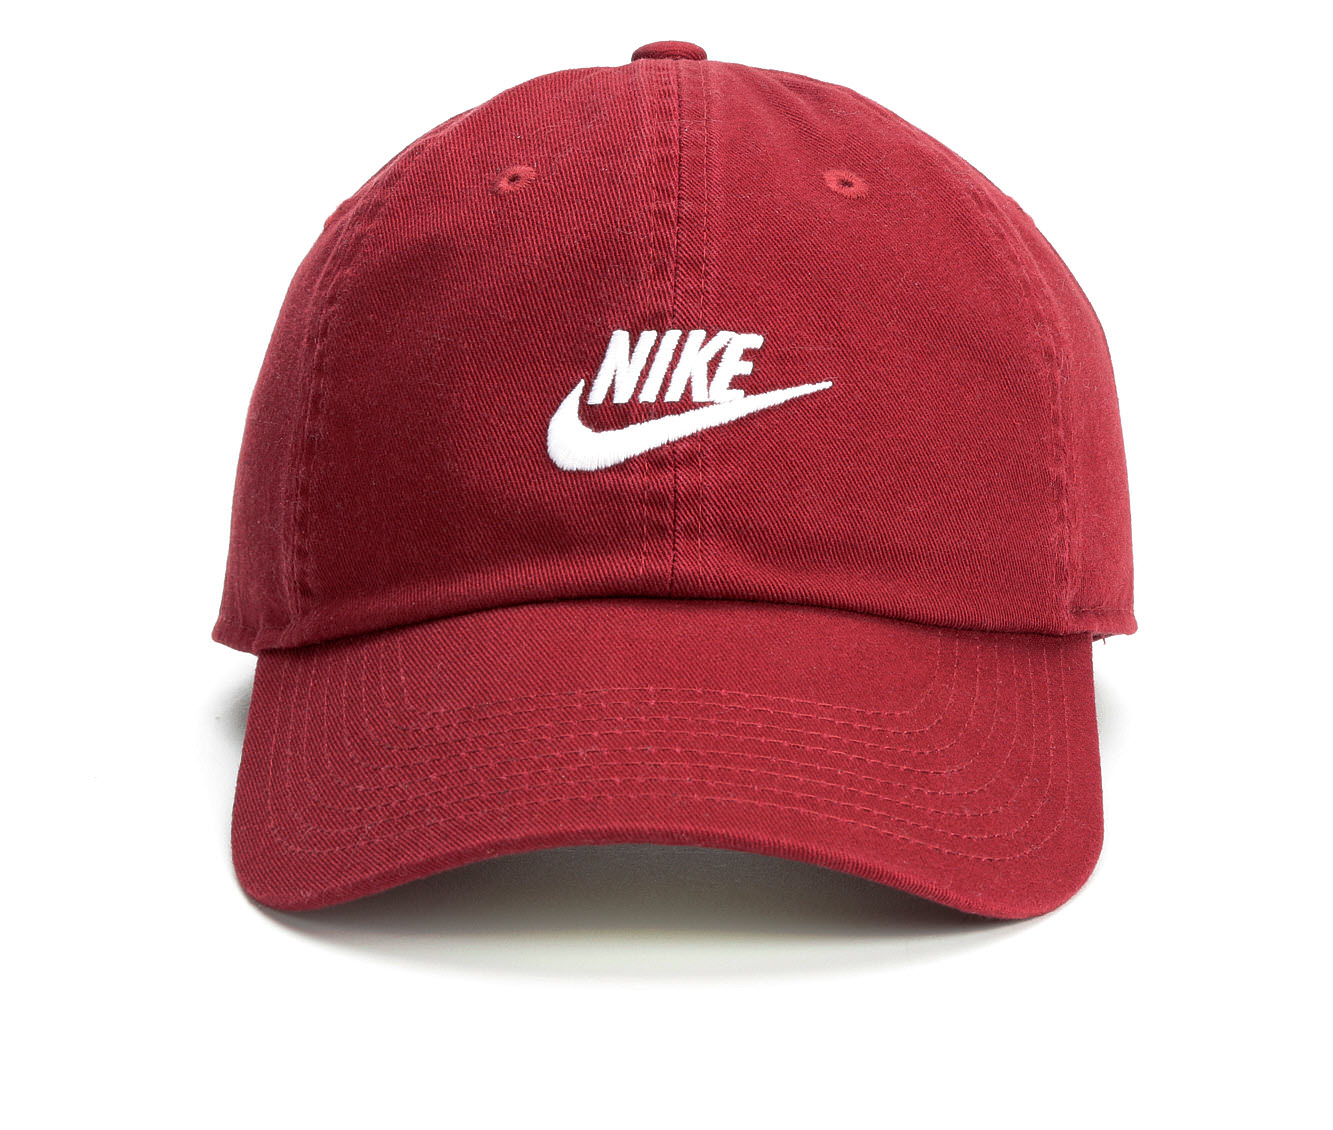 Nike Futura Washed Hat (Red - Size UNSZ) 1721631